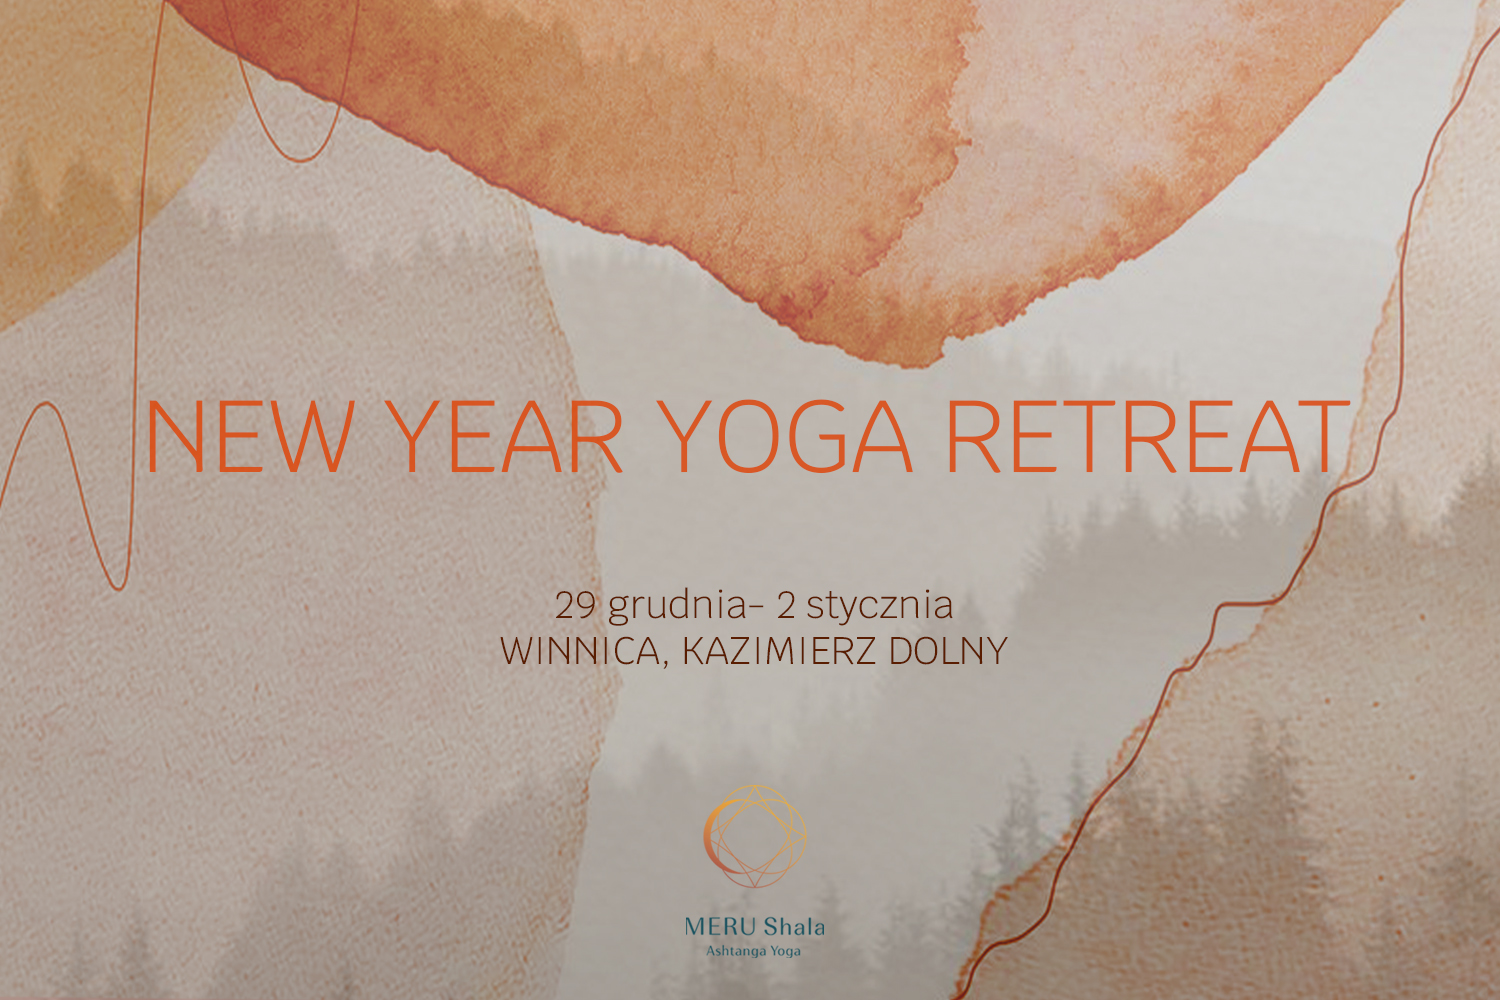 NEW YEAR • YOGA RETREAT